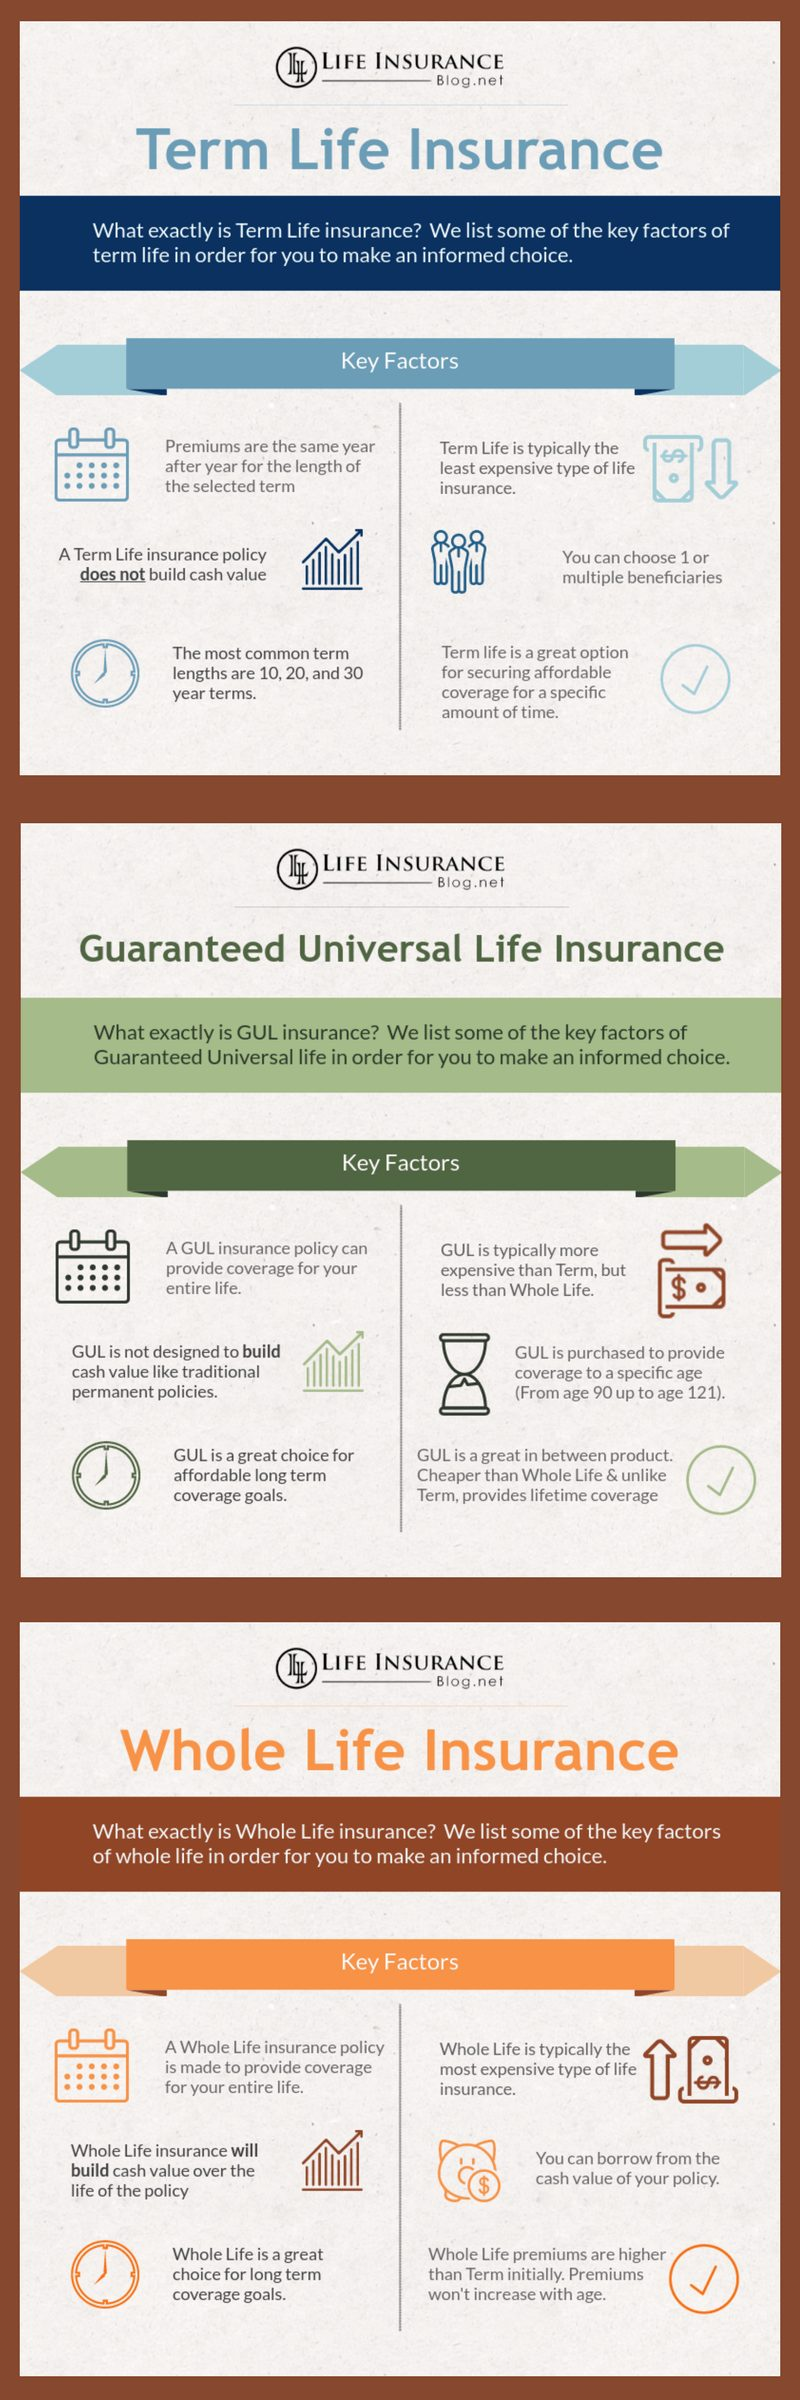 Difference Between Term, Universal and Whole Life Insurance